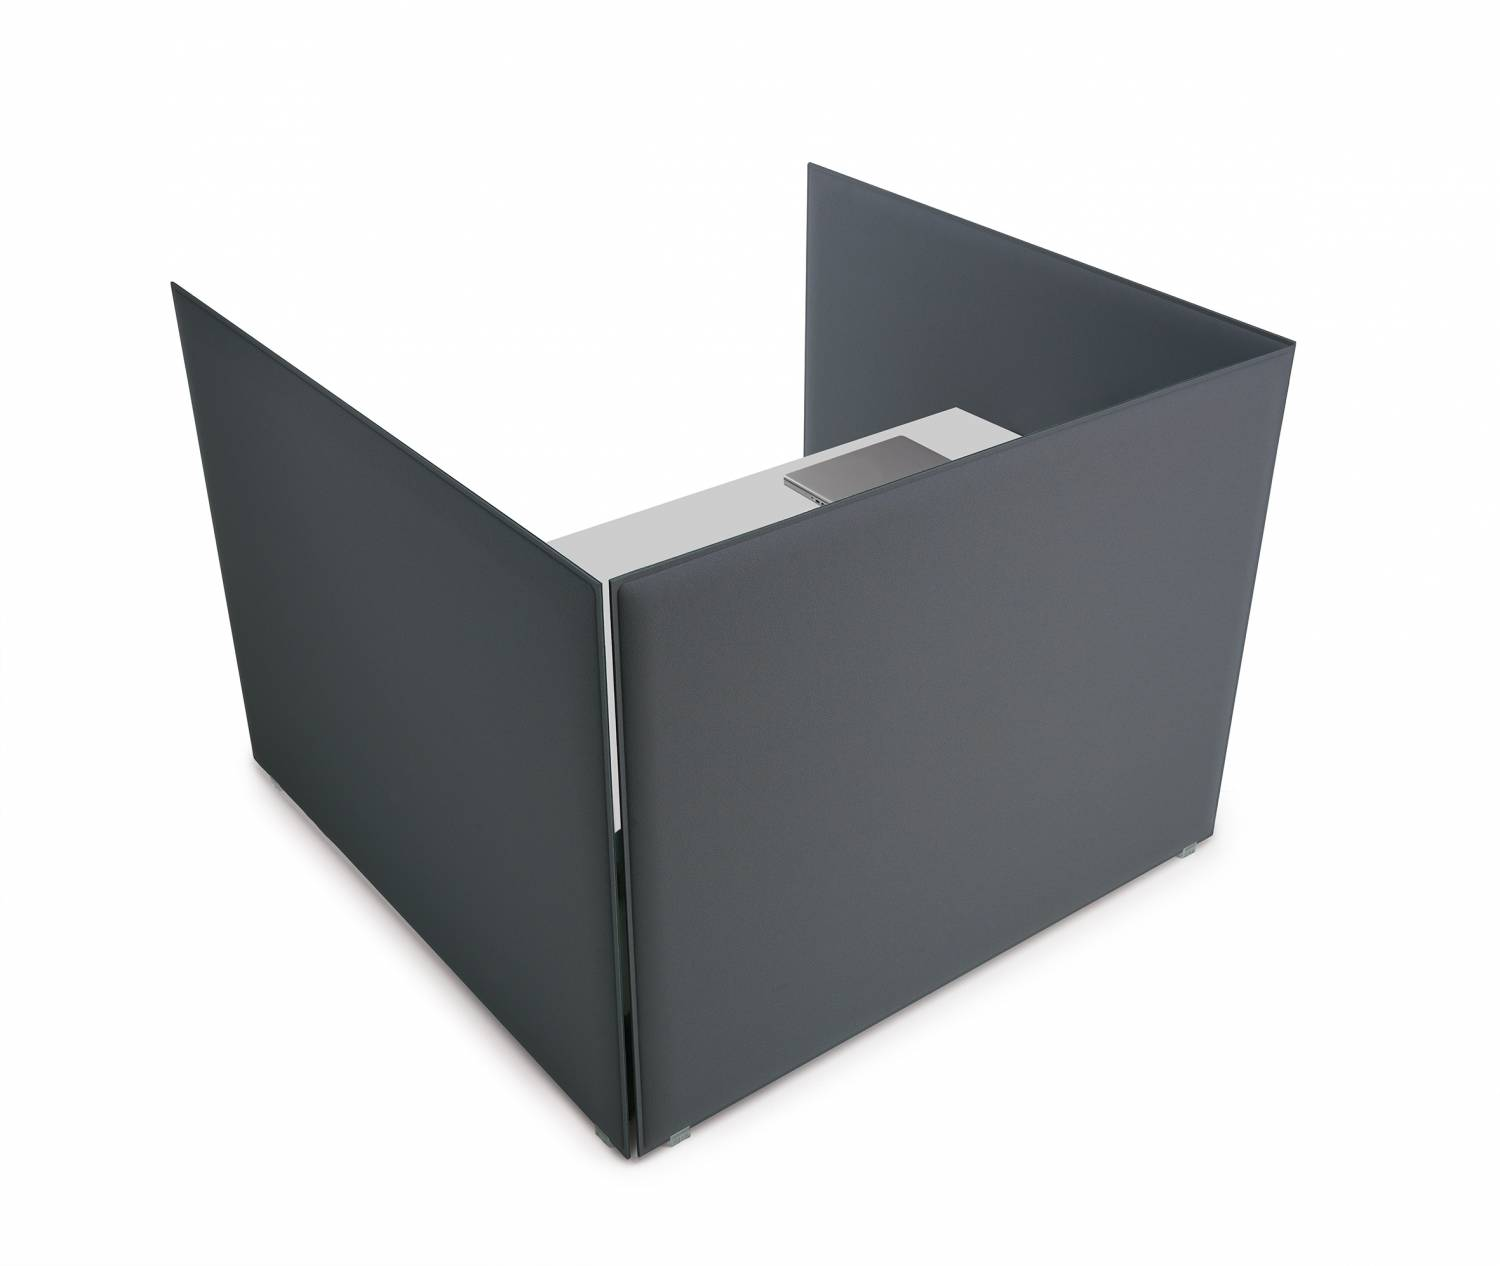 Oversize-Ocee-Desk-Mounted-Sound-Absorbing-Screens